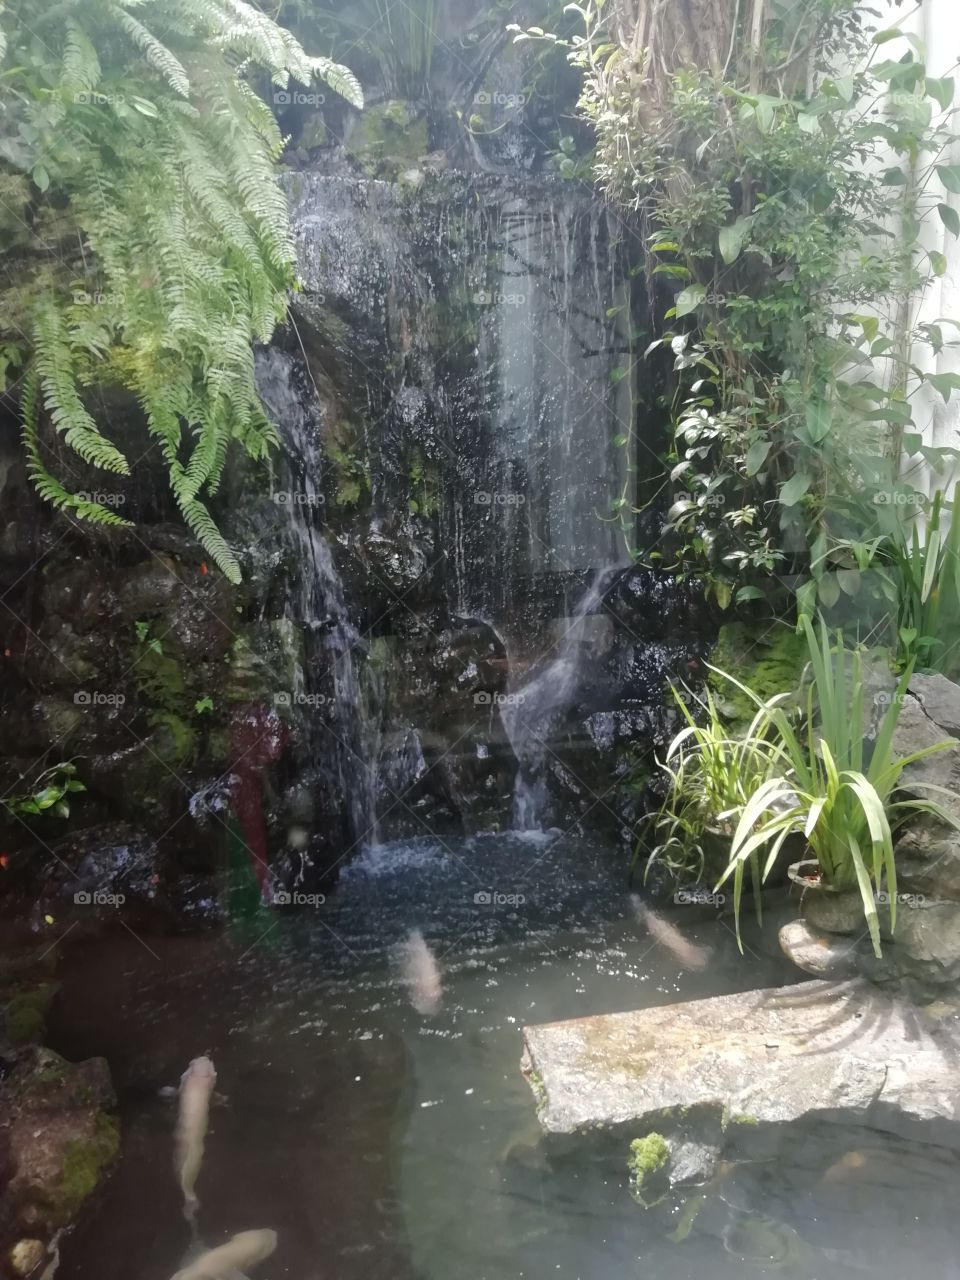 Another fish pond at the hotel